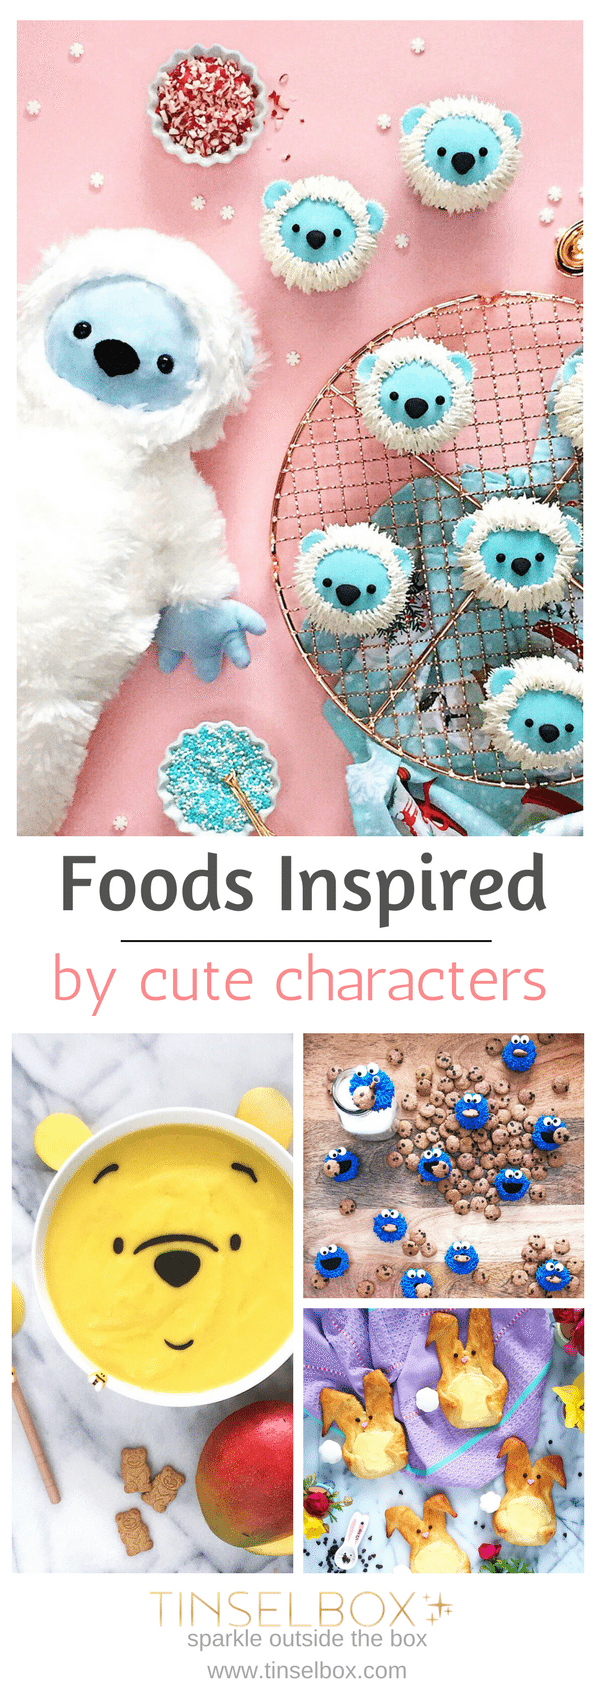 Darling foods inspired by cute charecters